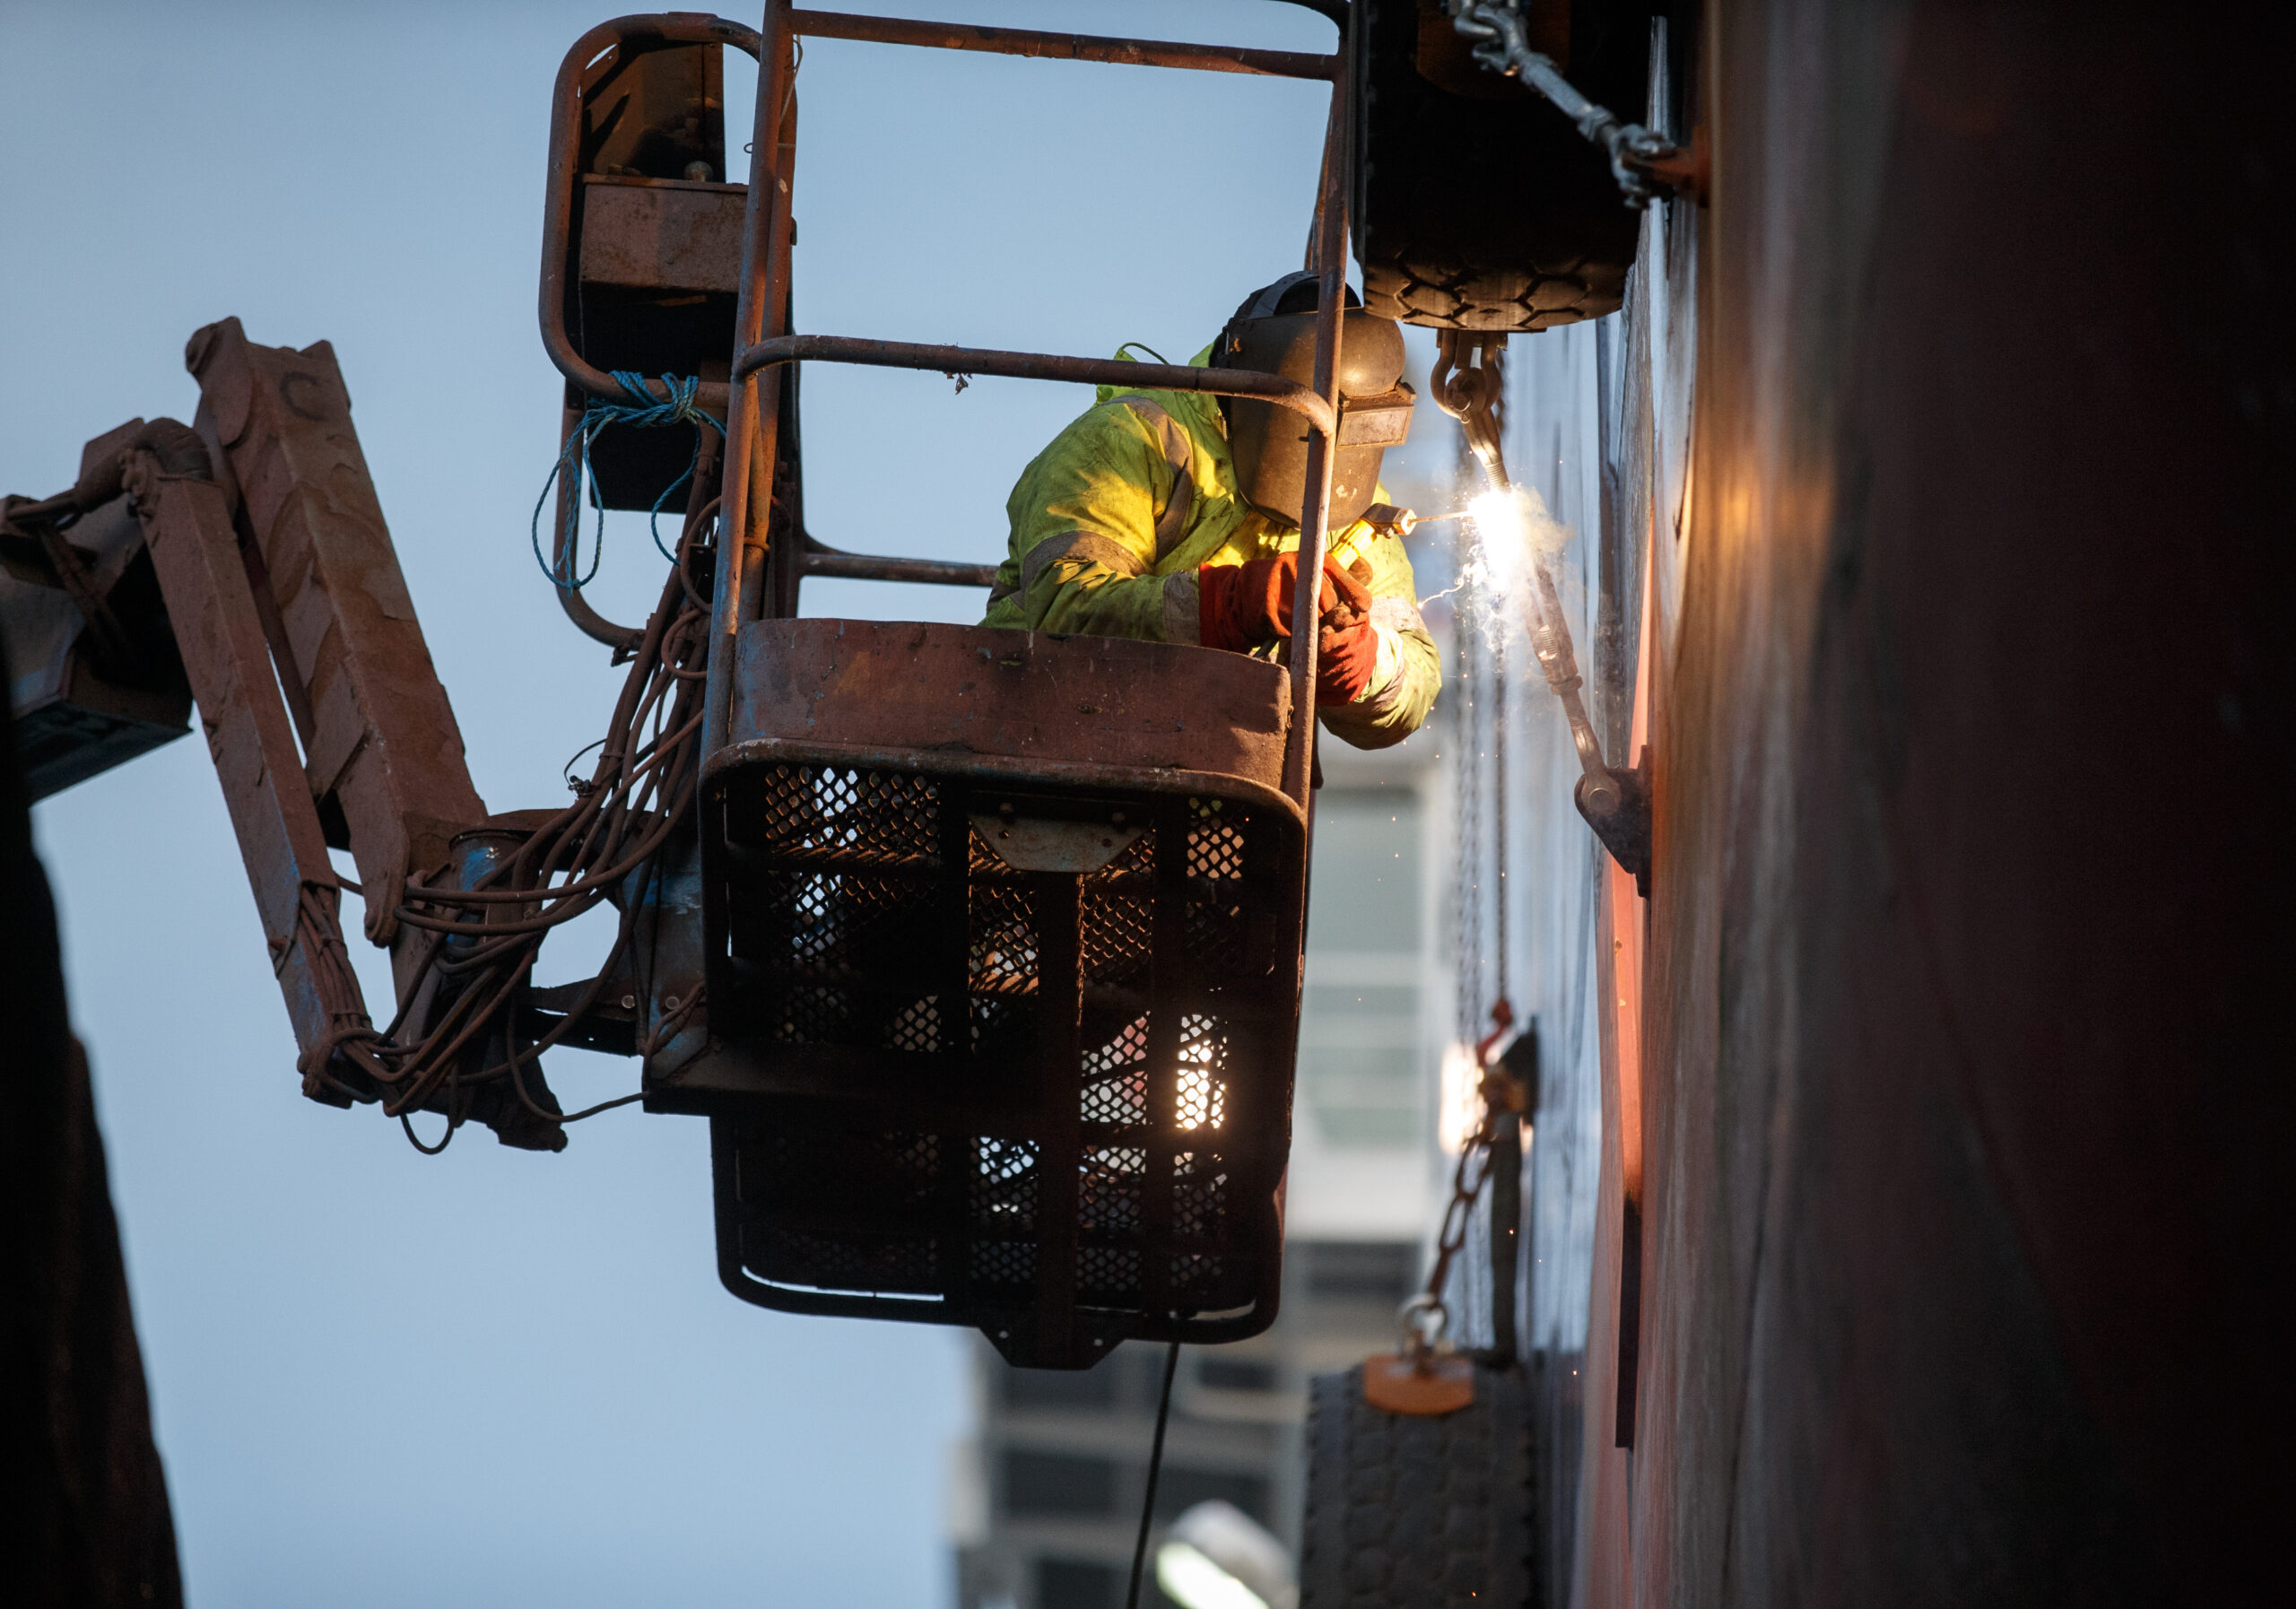 A worker on an articulated crane platform welding at the side of a rig or ship with sparks flying